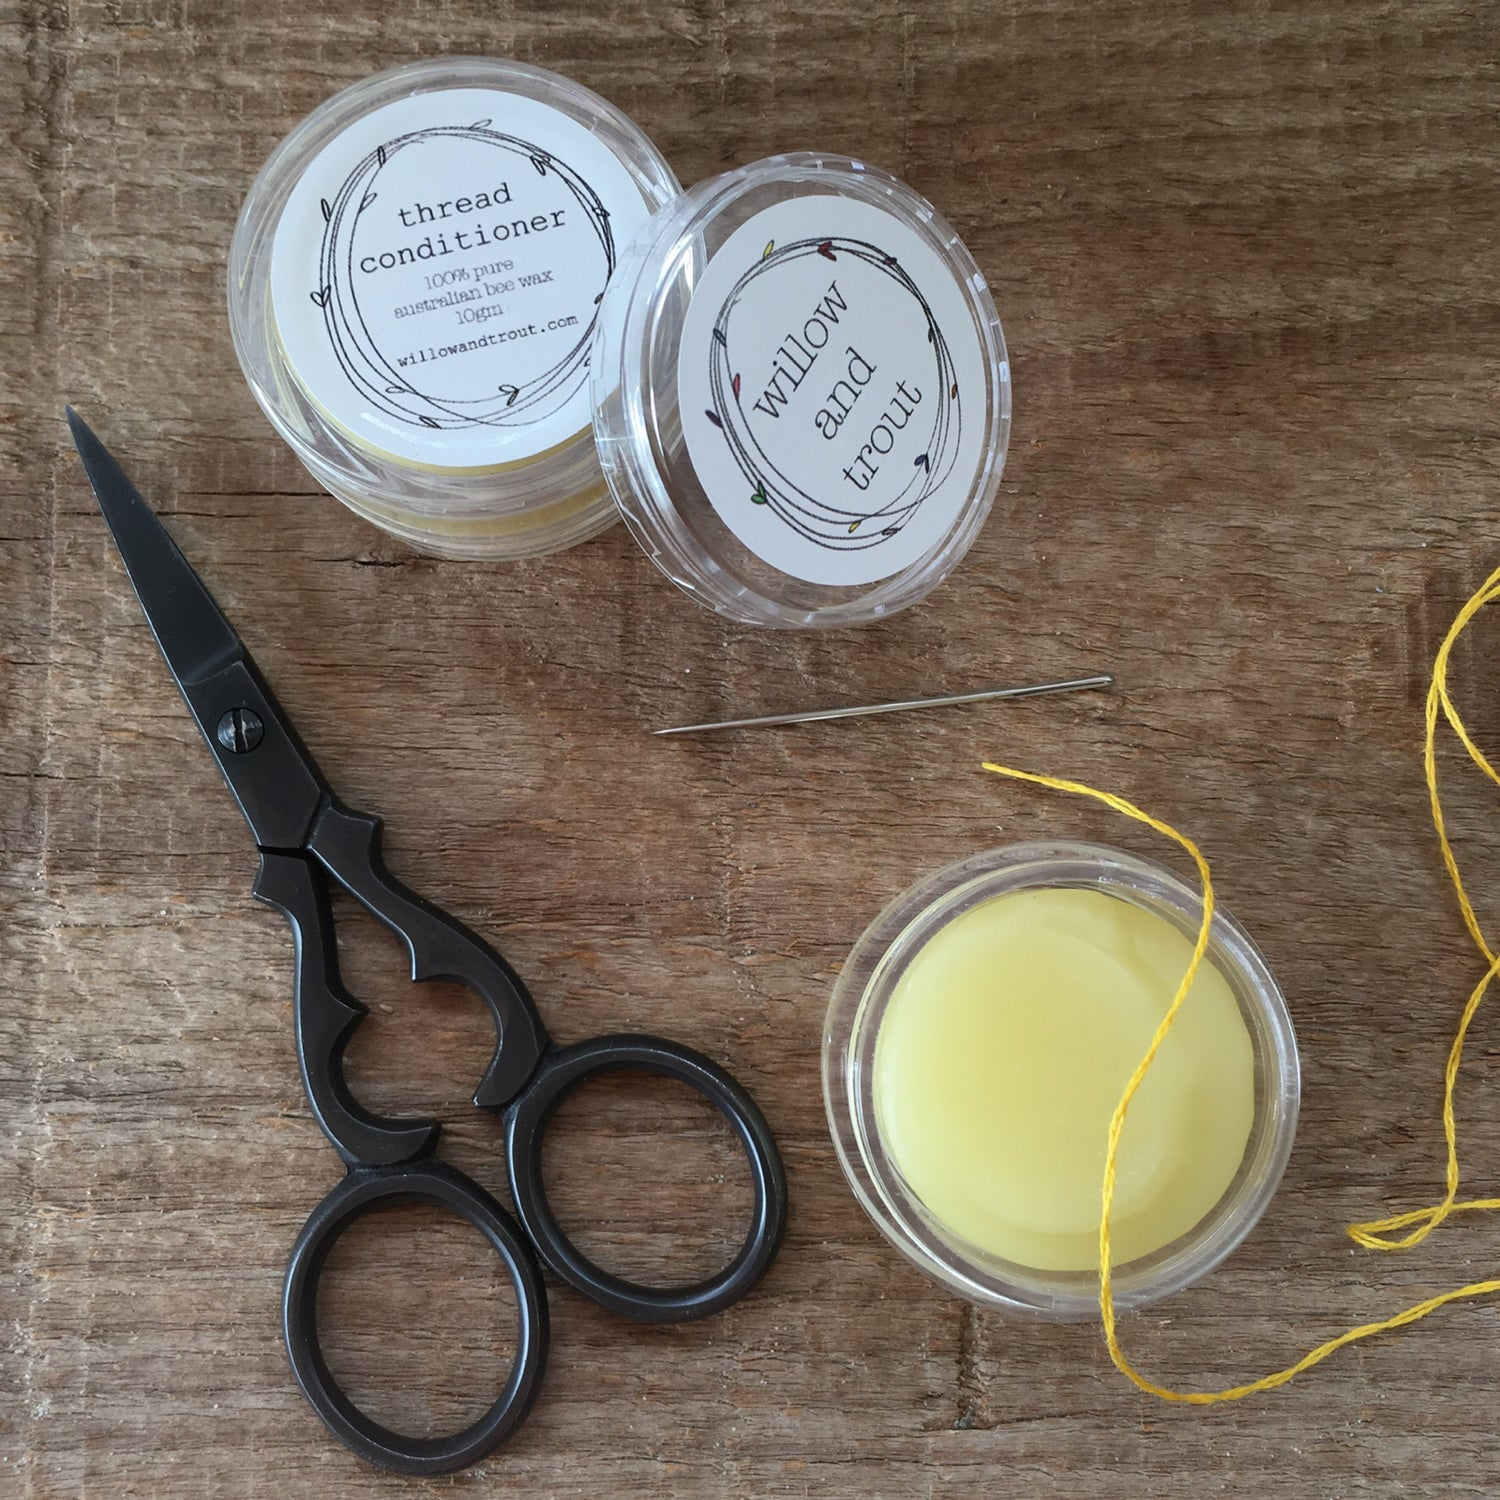 Image of Willow and Trout Thread Conditioner